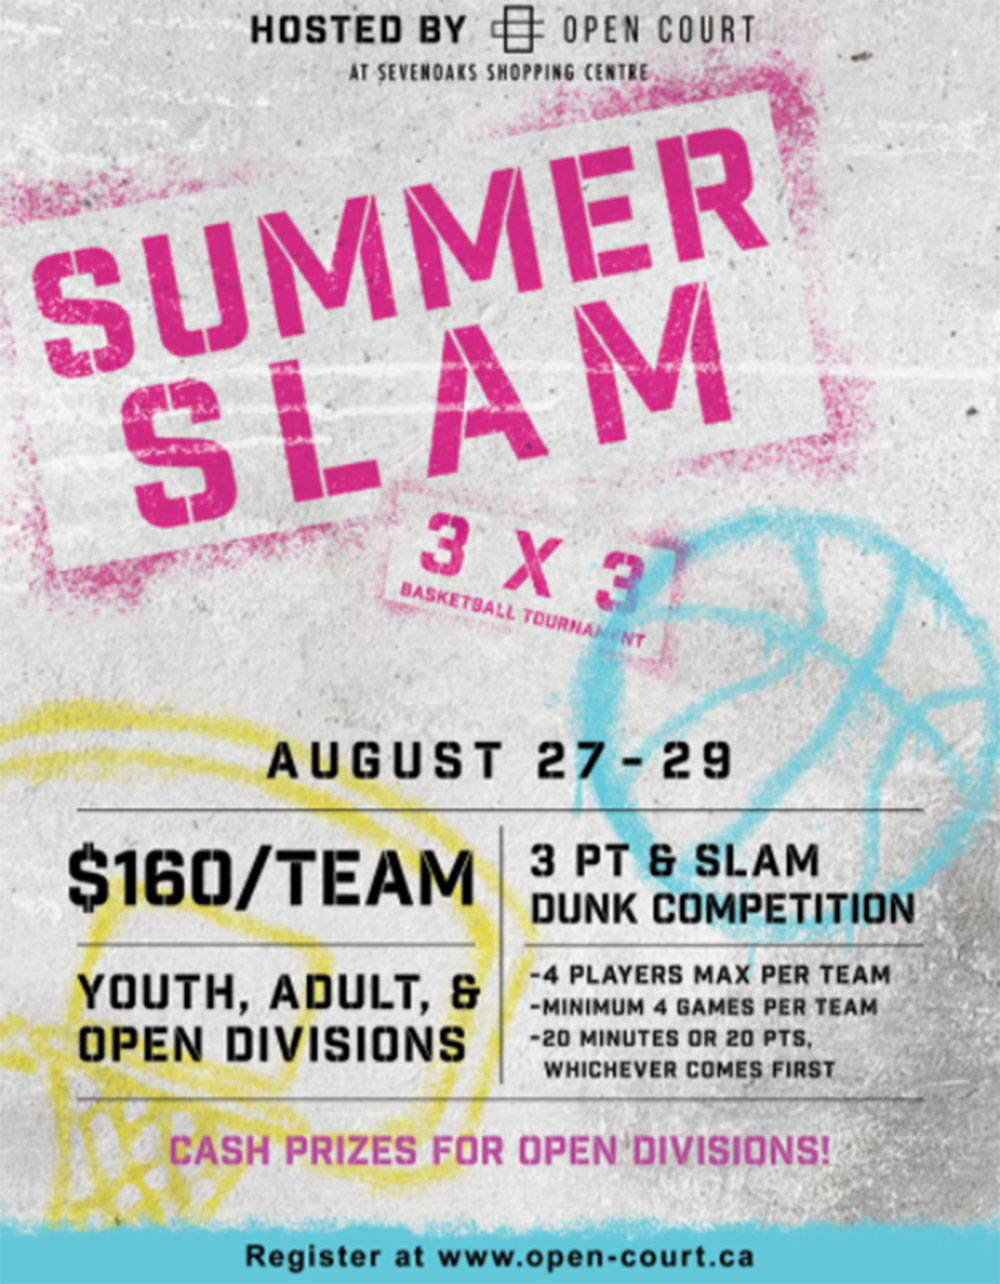 The Summer Slam event debuts at Abbotsford's Sevenoaks Shopping Centre later this summer.